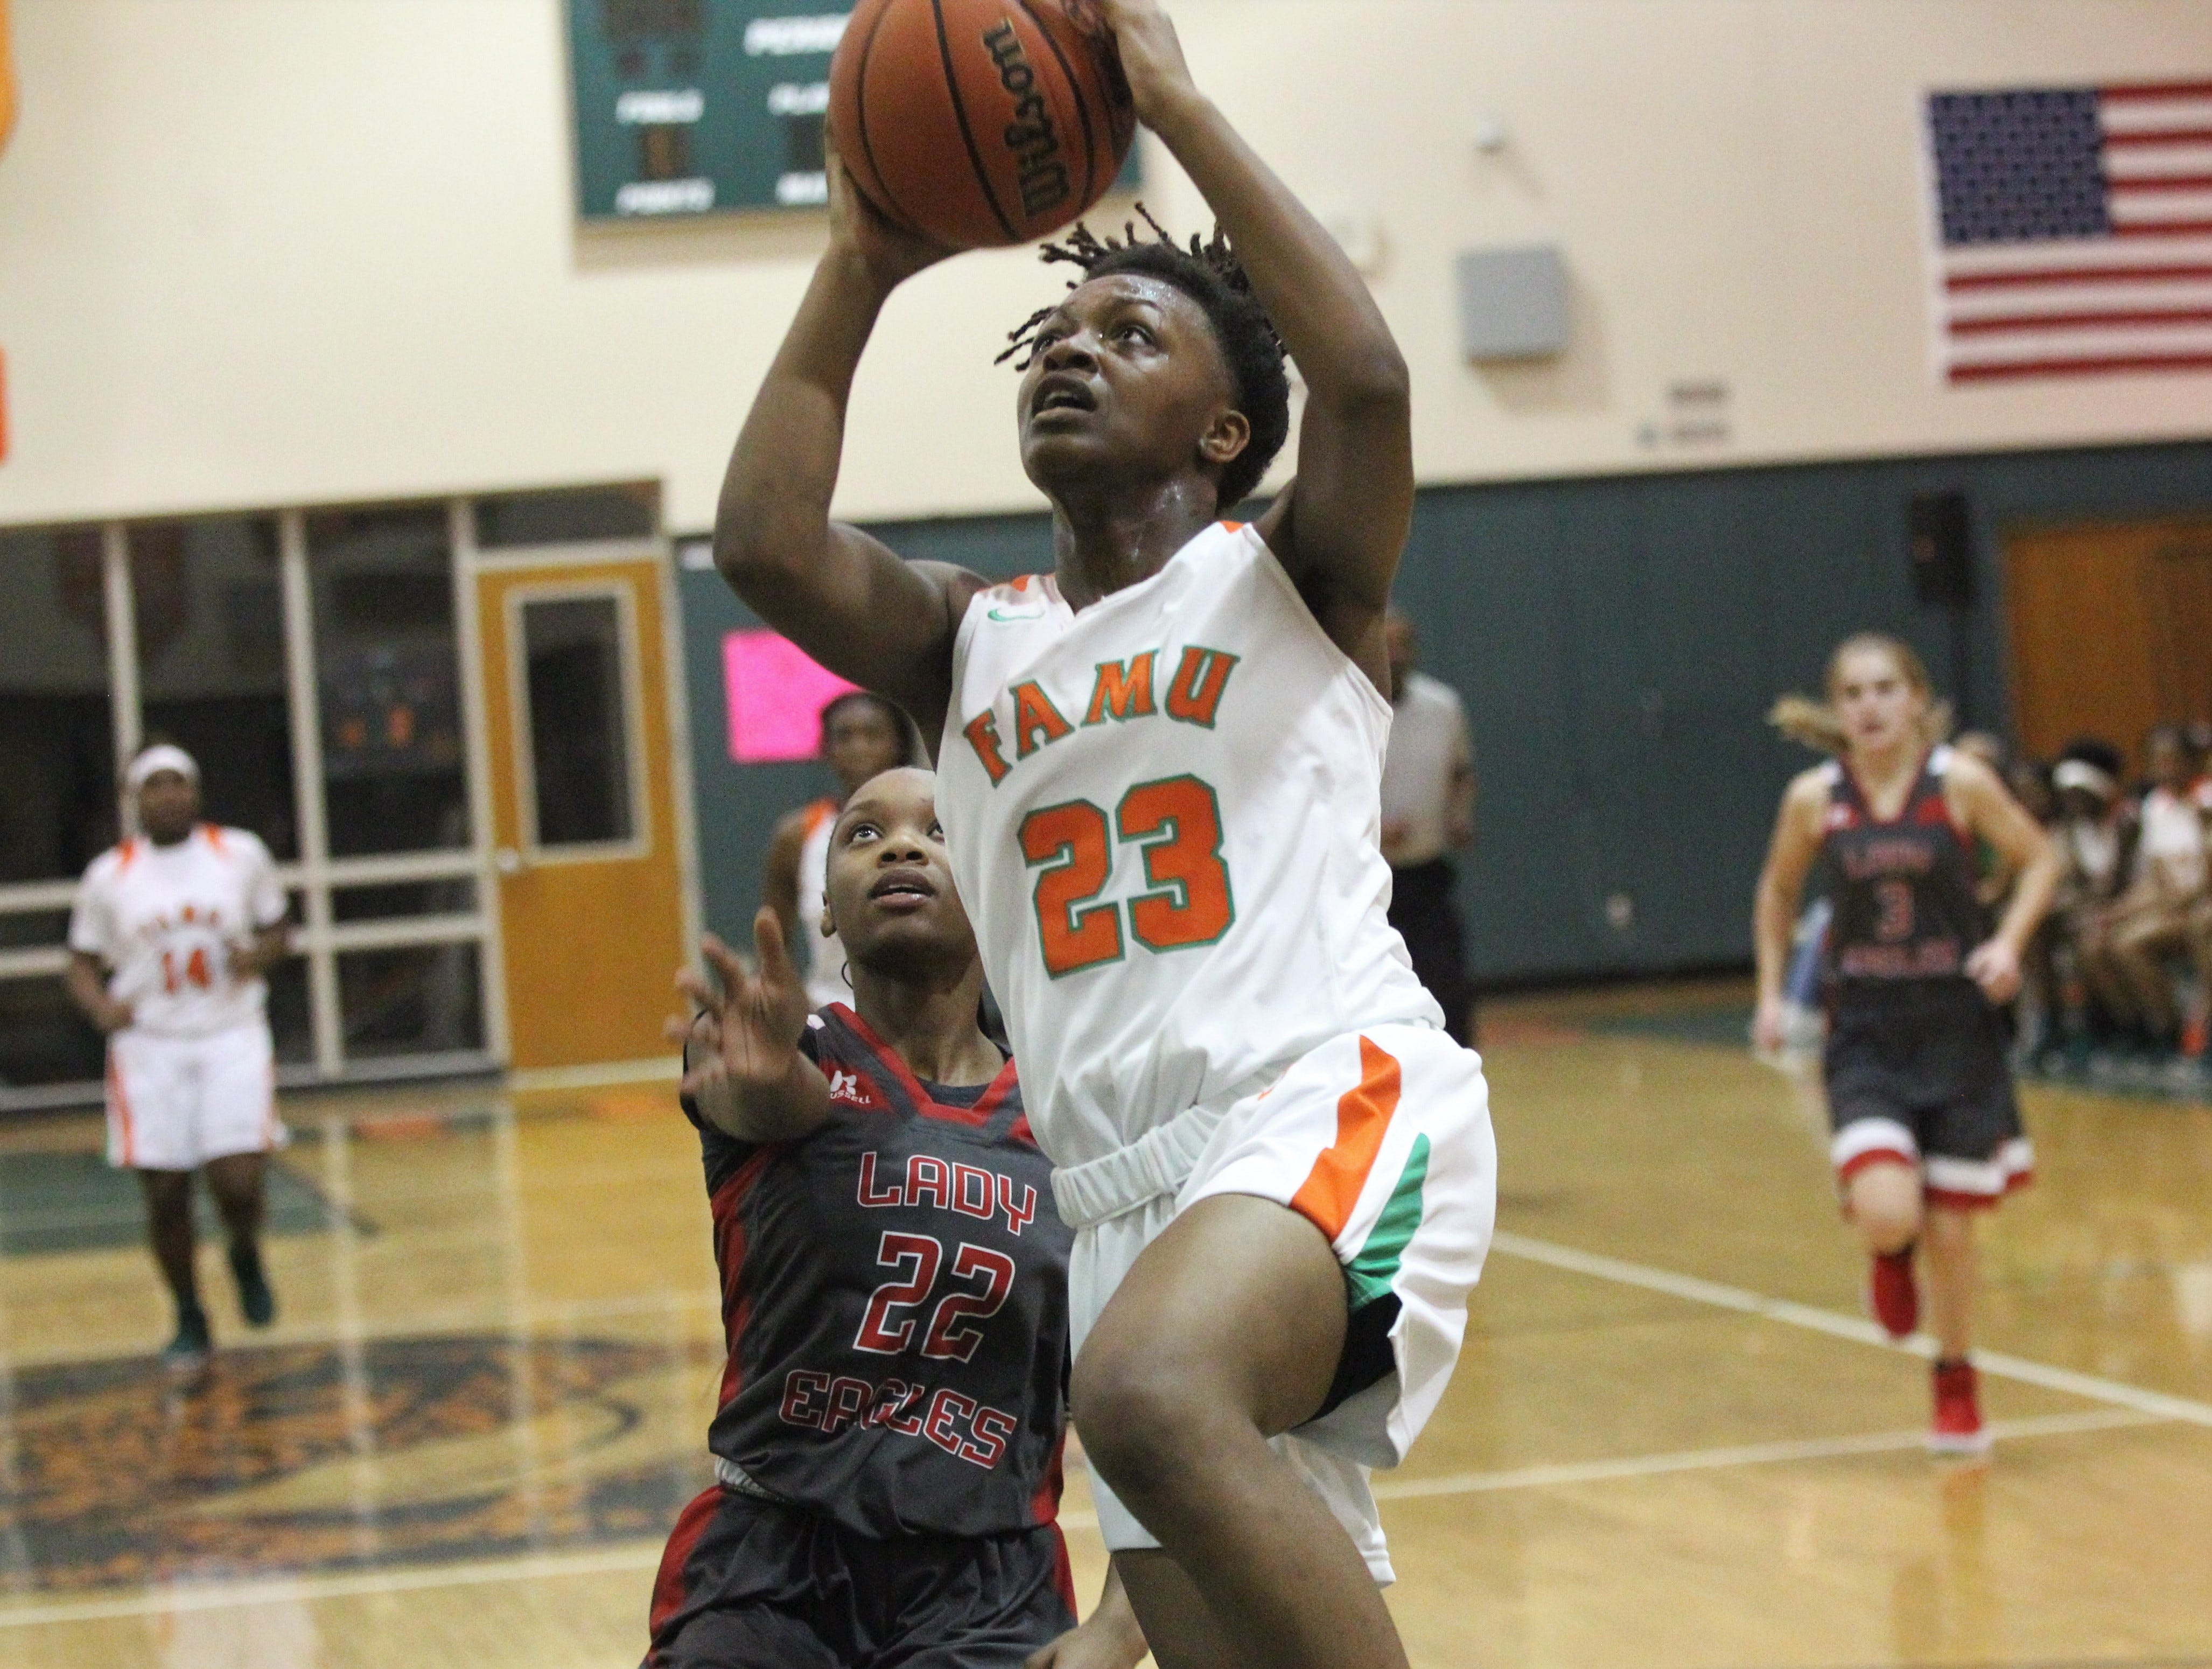 FAMU DRS senior Ayleshia Vickers goes up for a layup as FAMU DRS' girls basketball team beat NFC 59-41 for a District 1-3A title on Jan. 7, 2019.